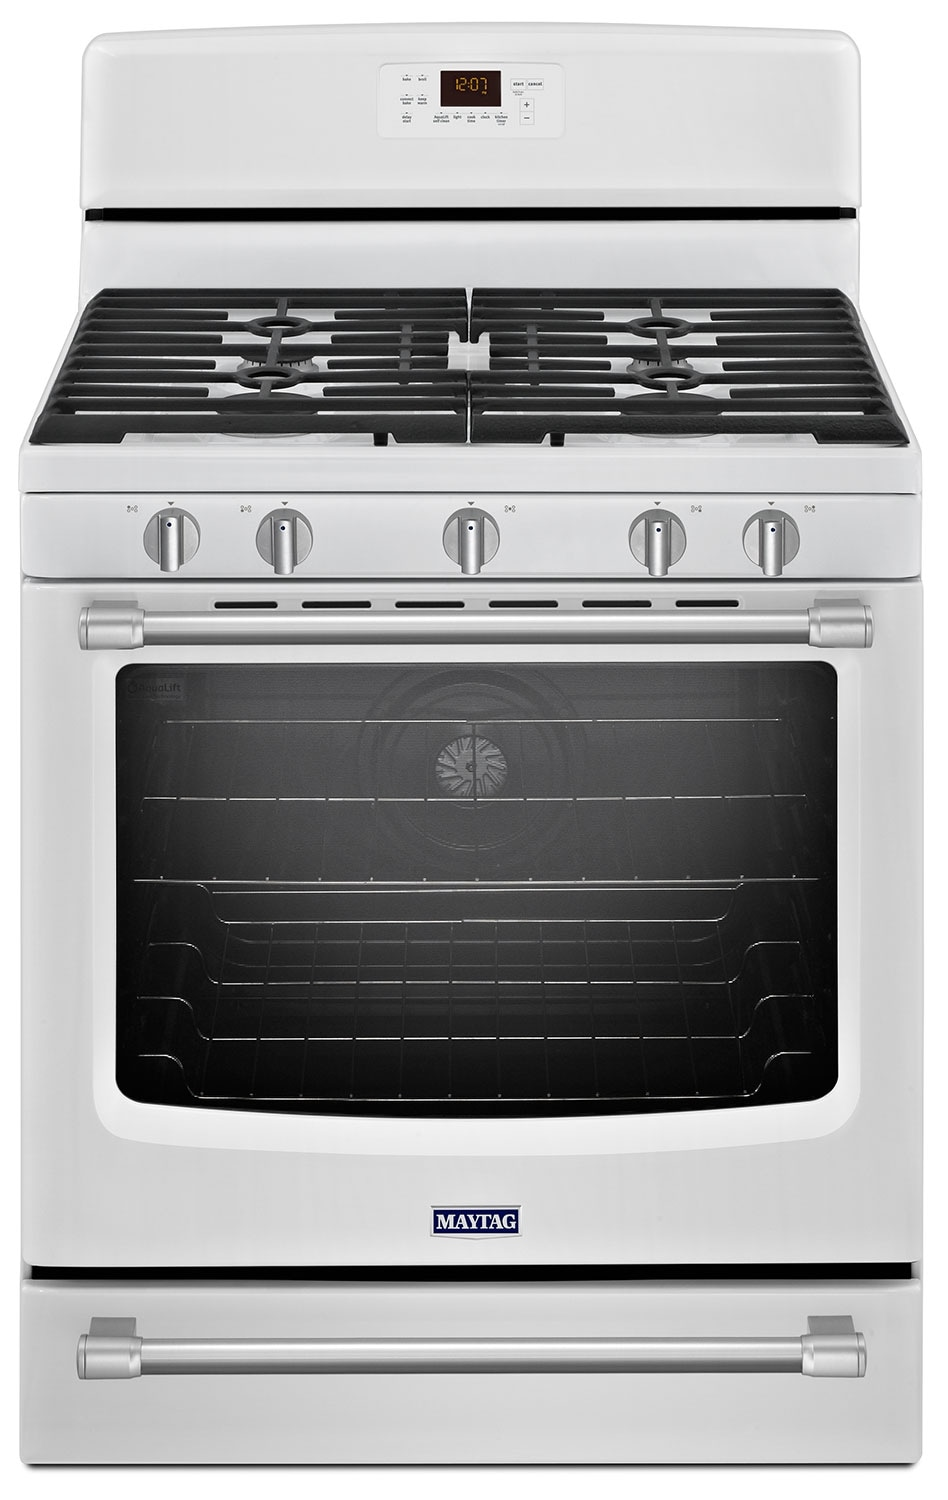 Cooking Products - Maytag White Freestanding Gas Convection Range (5.8 Cu. Ft.) - MGR8700DH